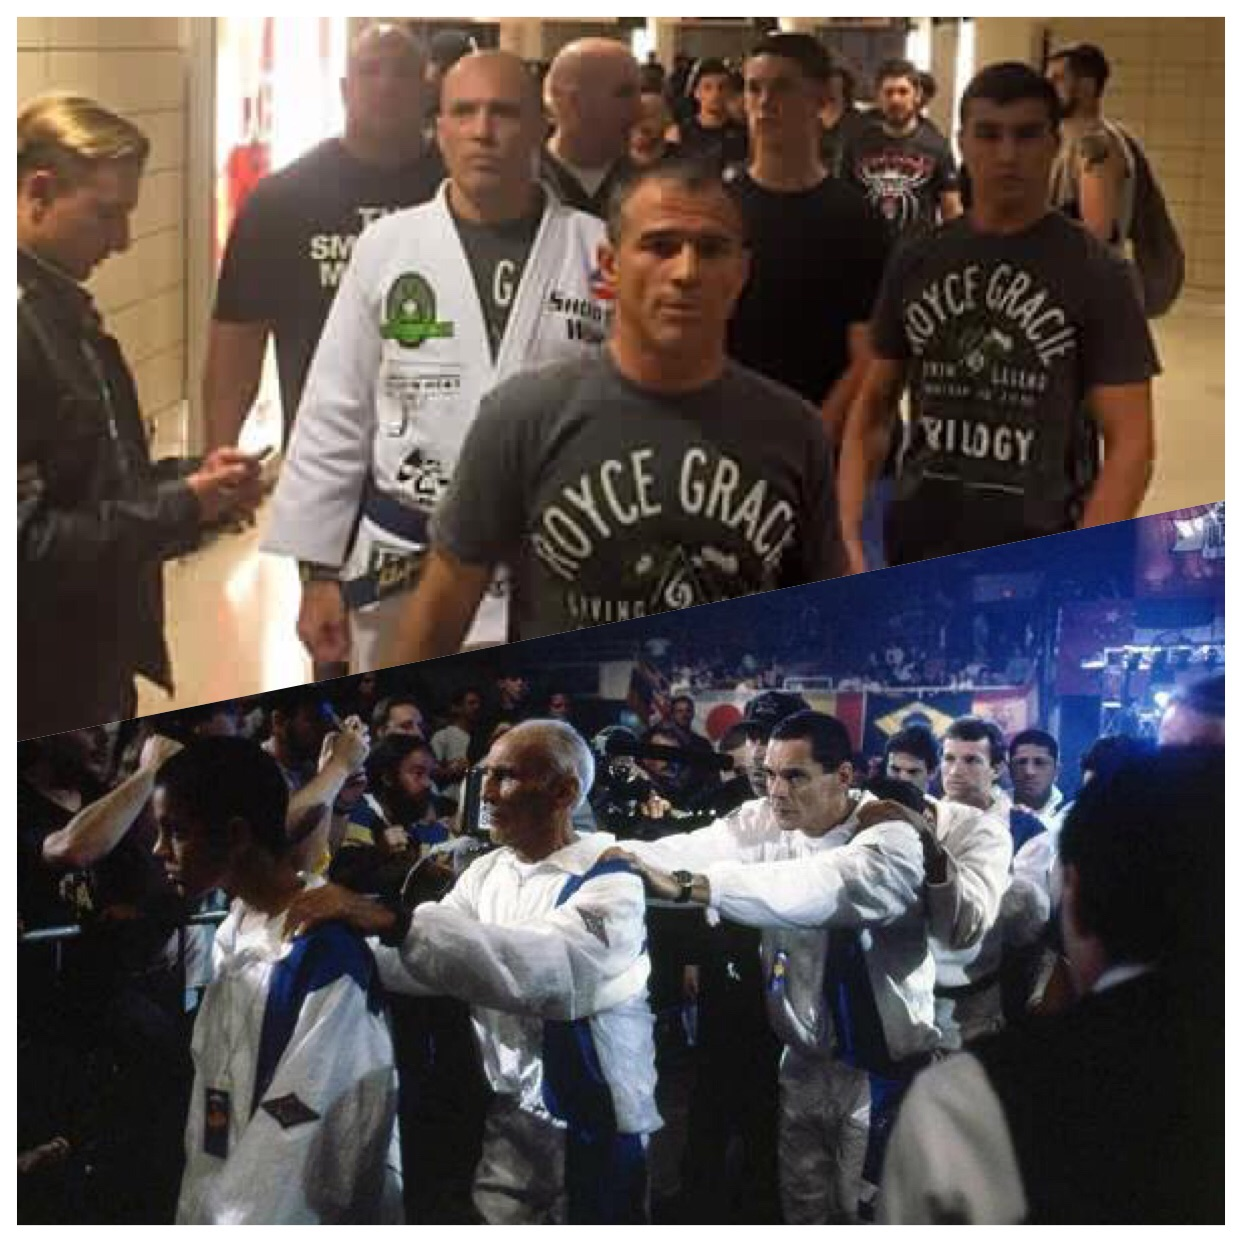 The Gracie train 20+ years then and now